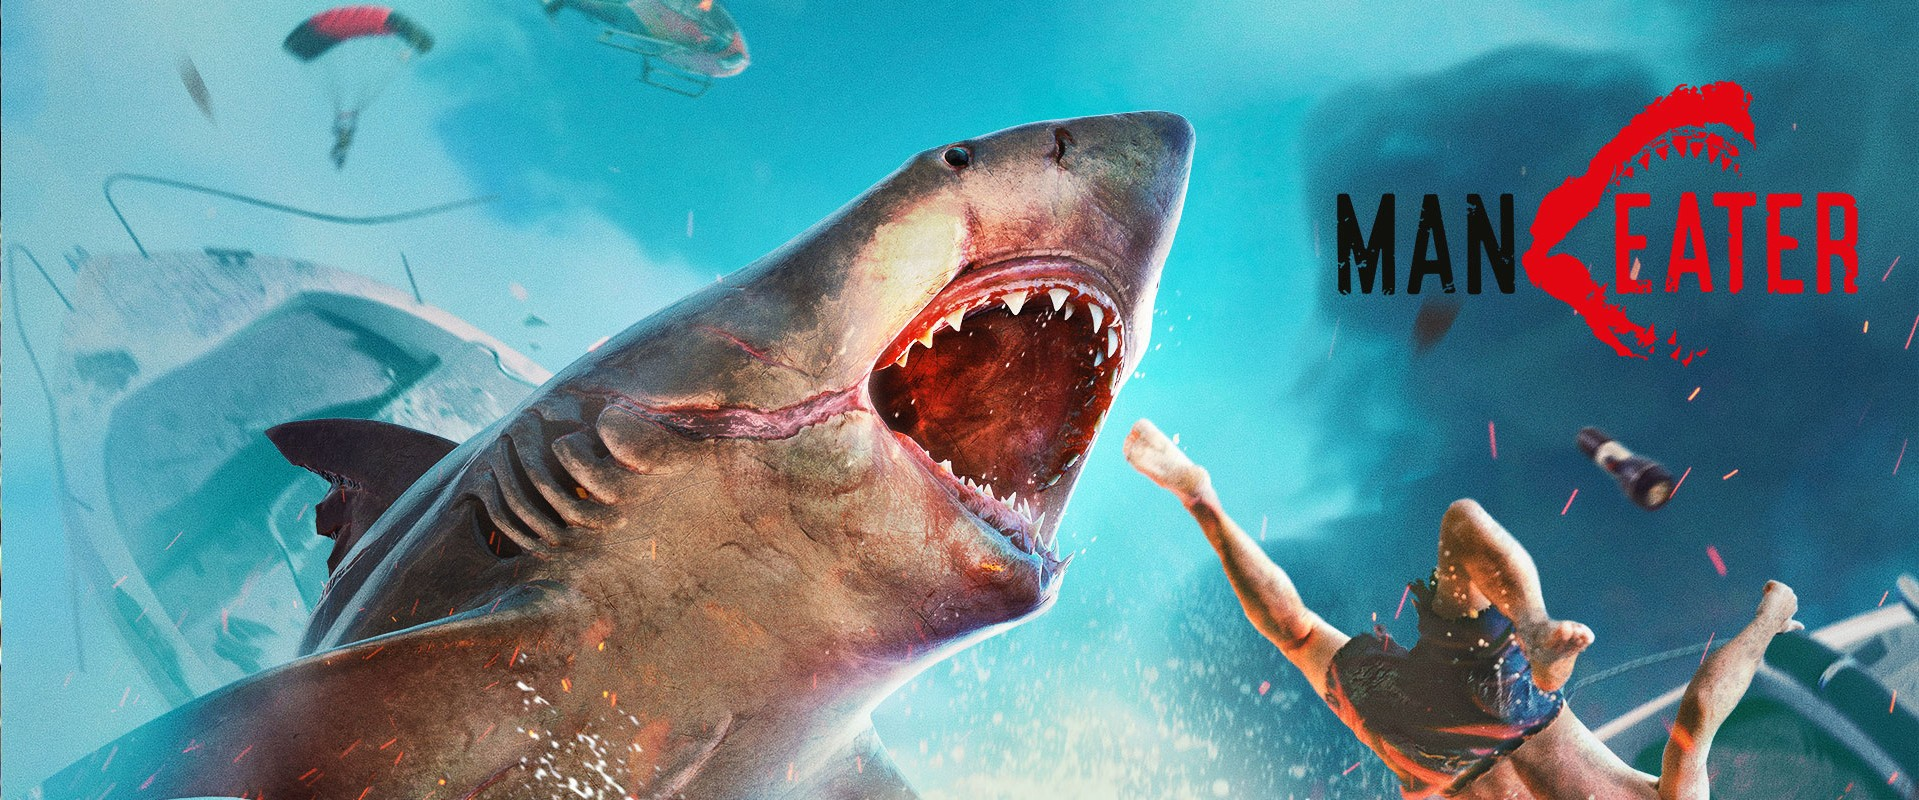 ManEater : Jeu de requins!